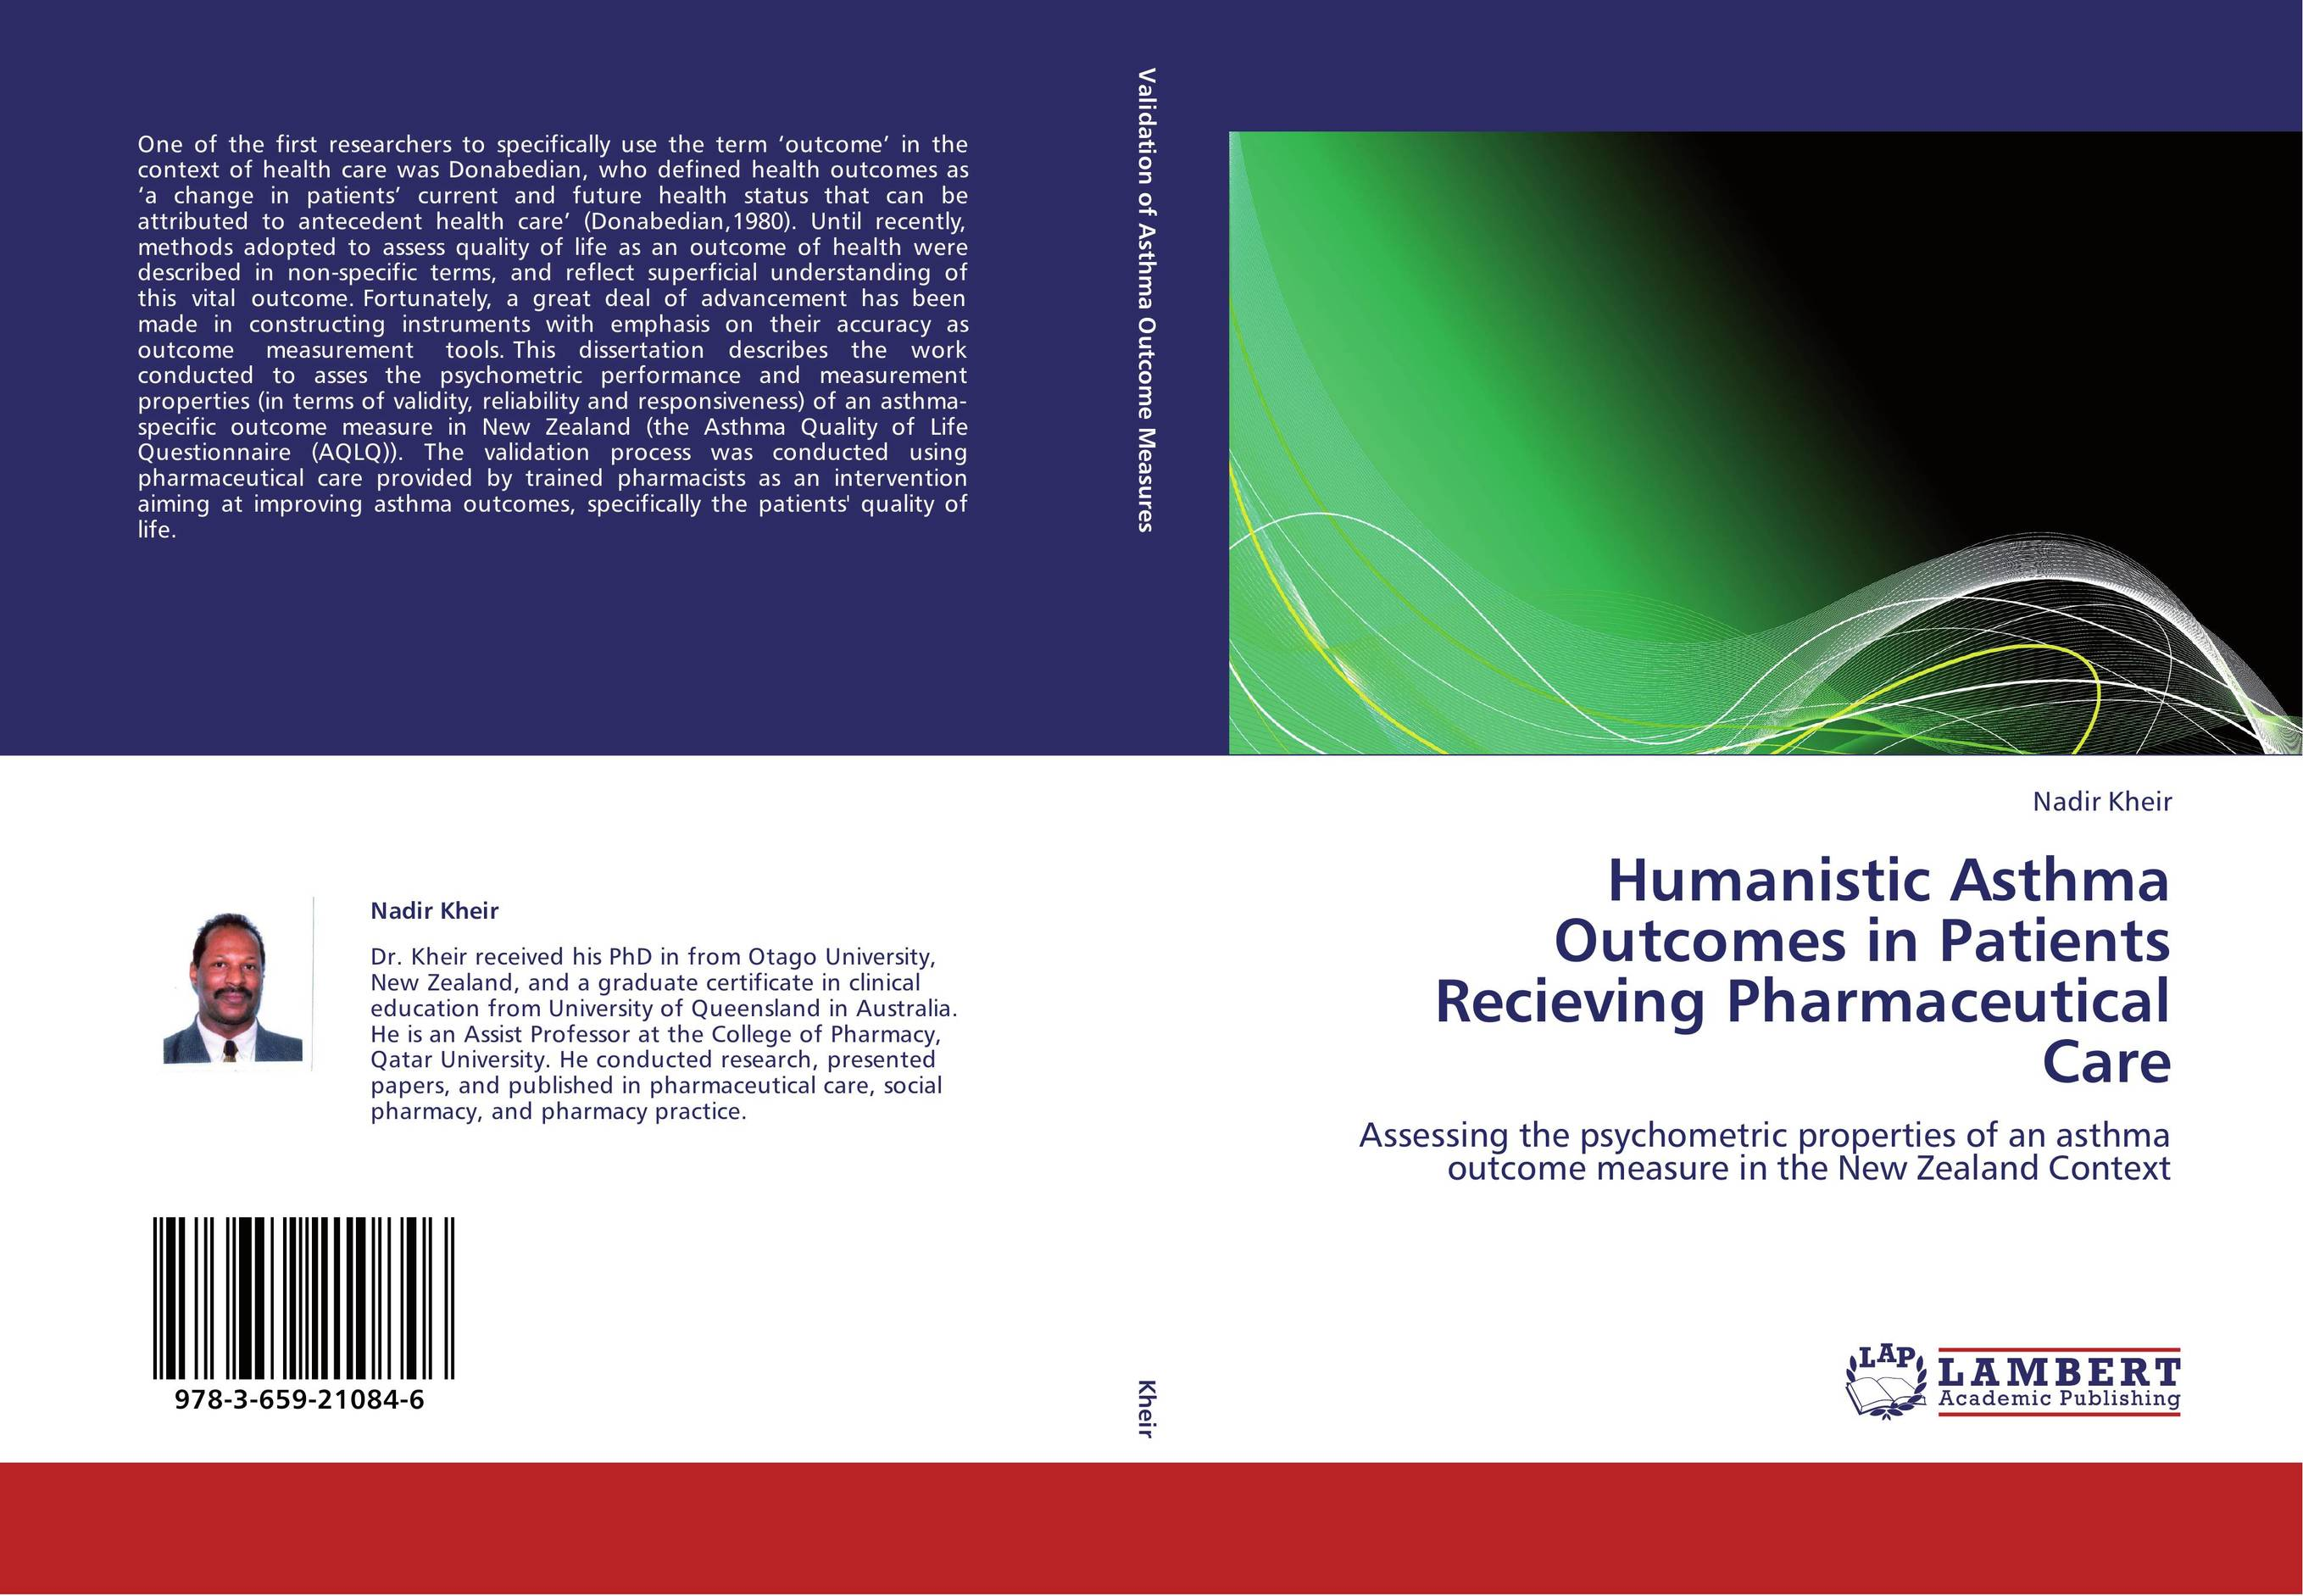 dissertation pharmaceutical care Iii abstract this thesis explores the role of pharmacists in prenatal health care for women with chronic diseases this study consists of a systematic review of medline and academic search.